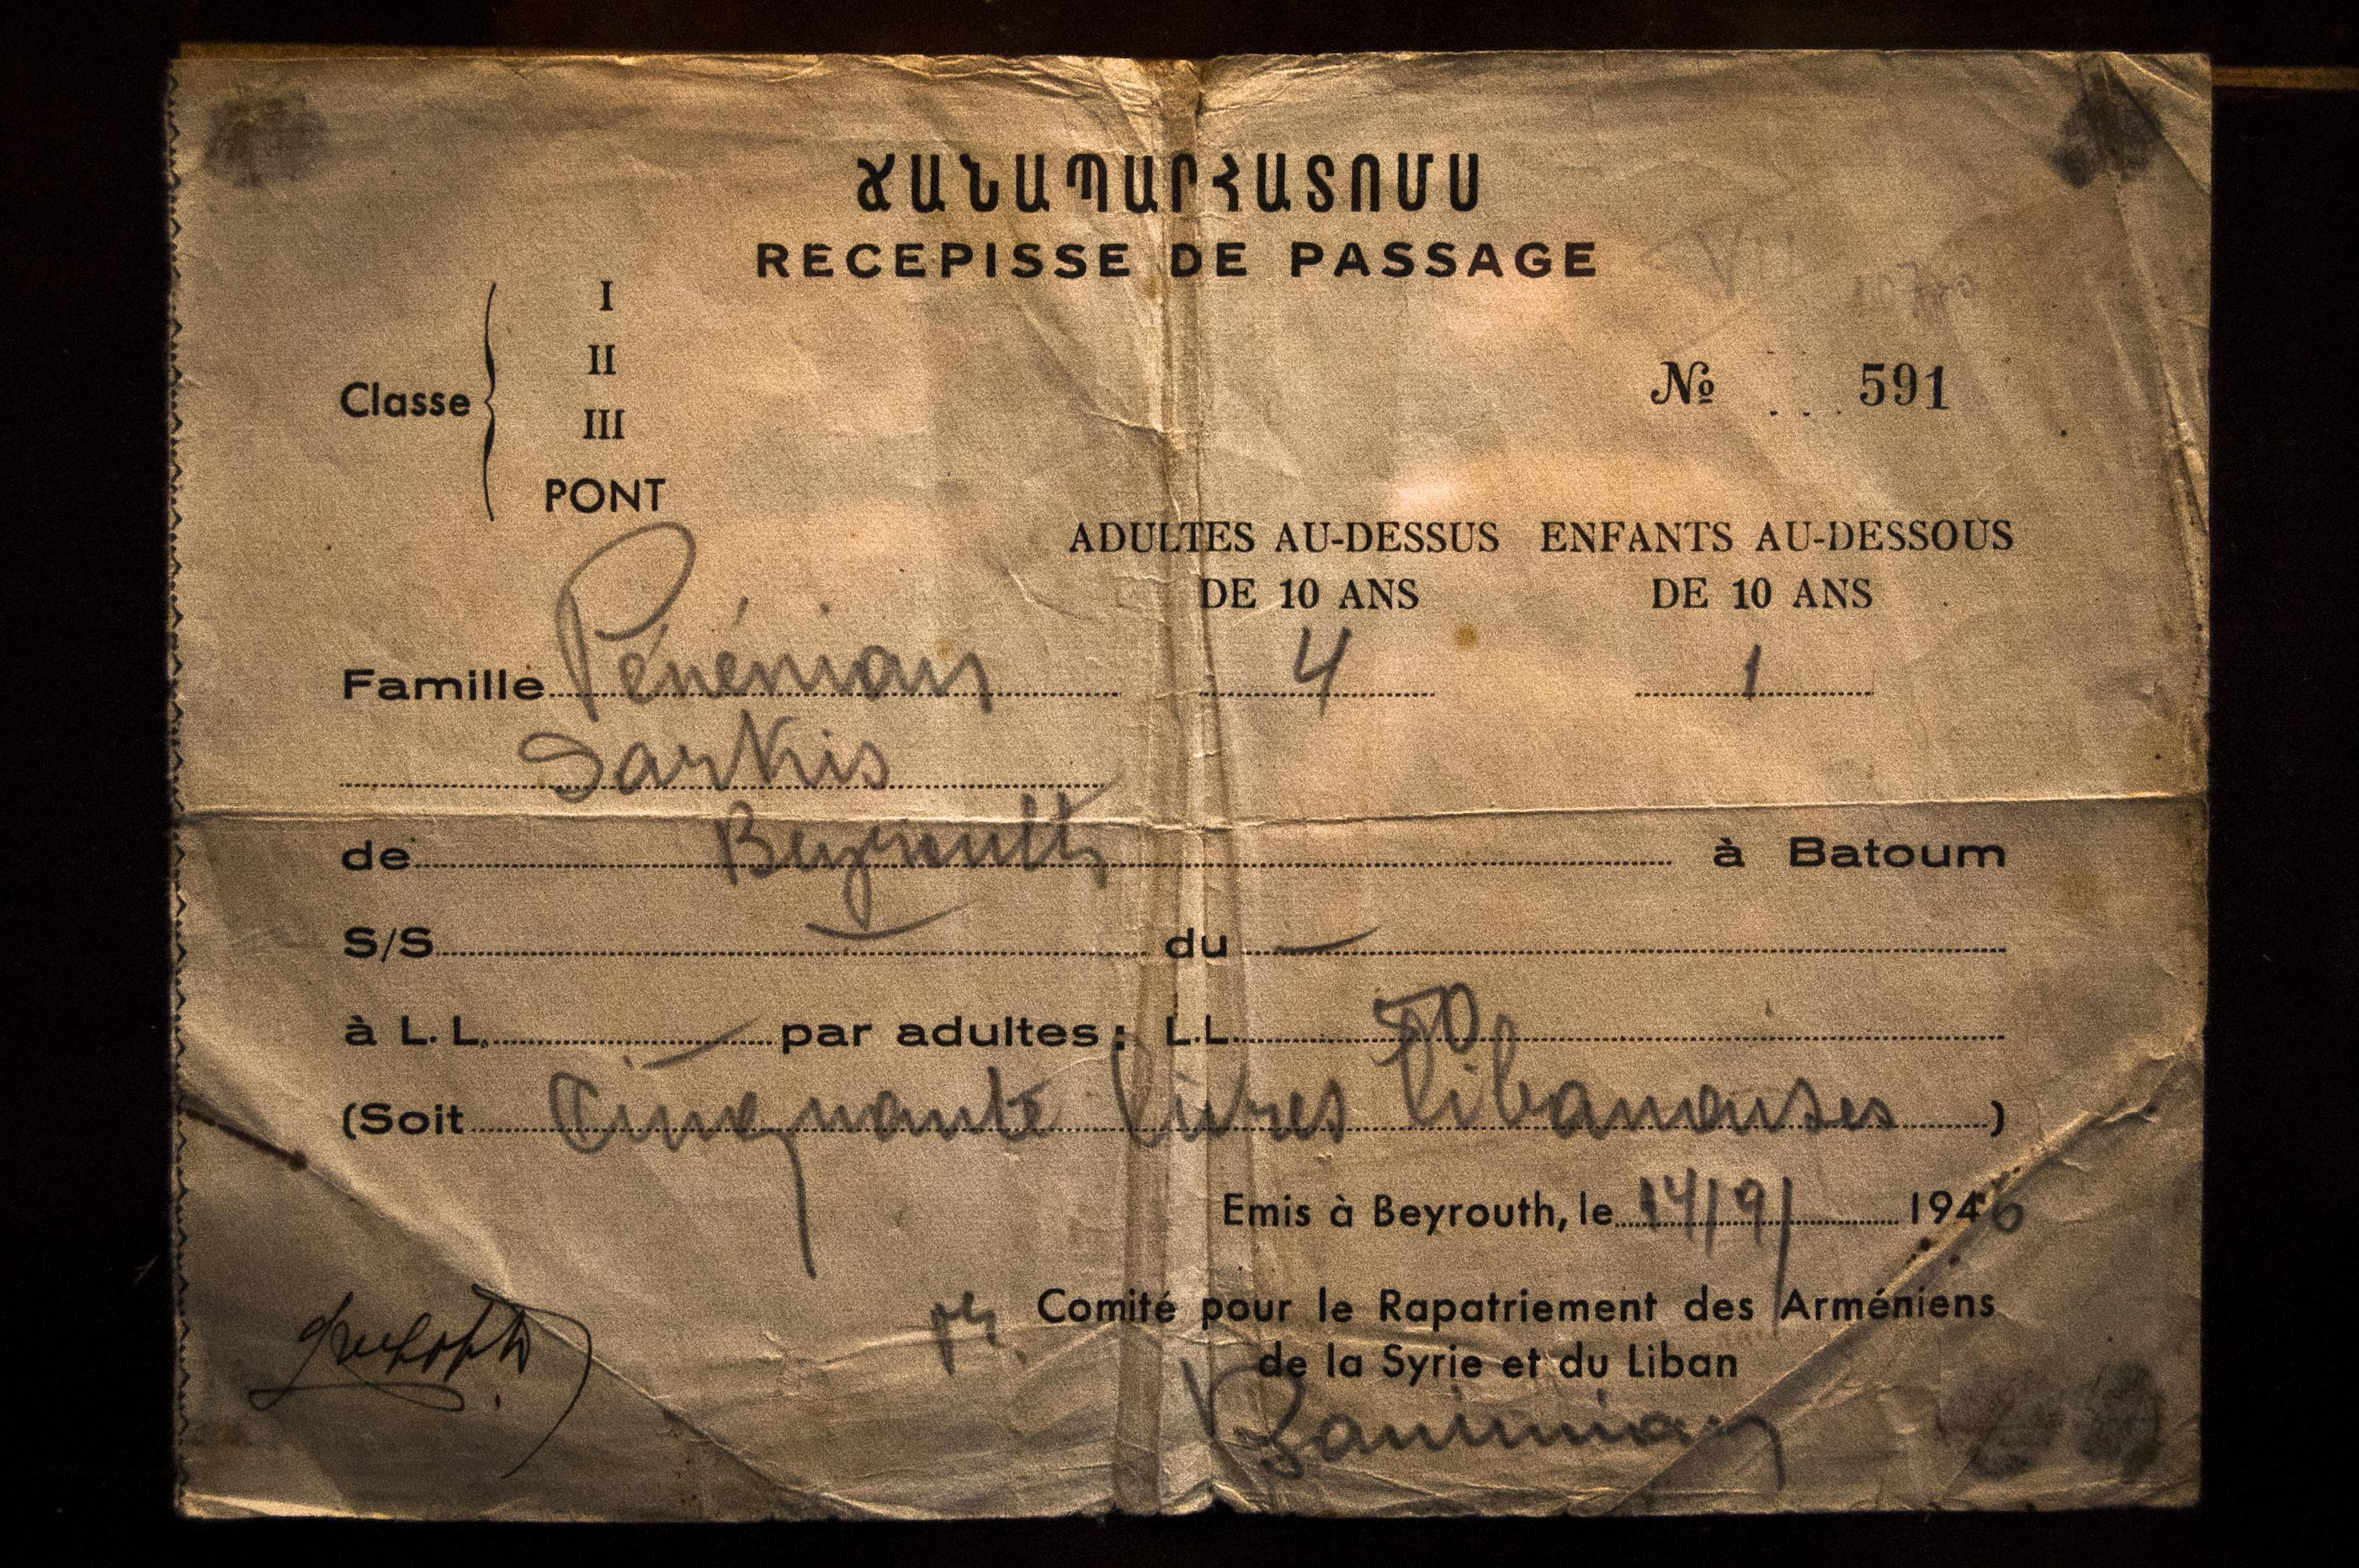 Mussa Dagh Museum - Boarding pass for Armenia 1948 photo by Paolo Martino